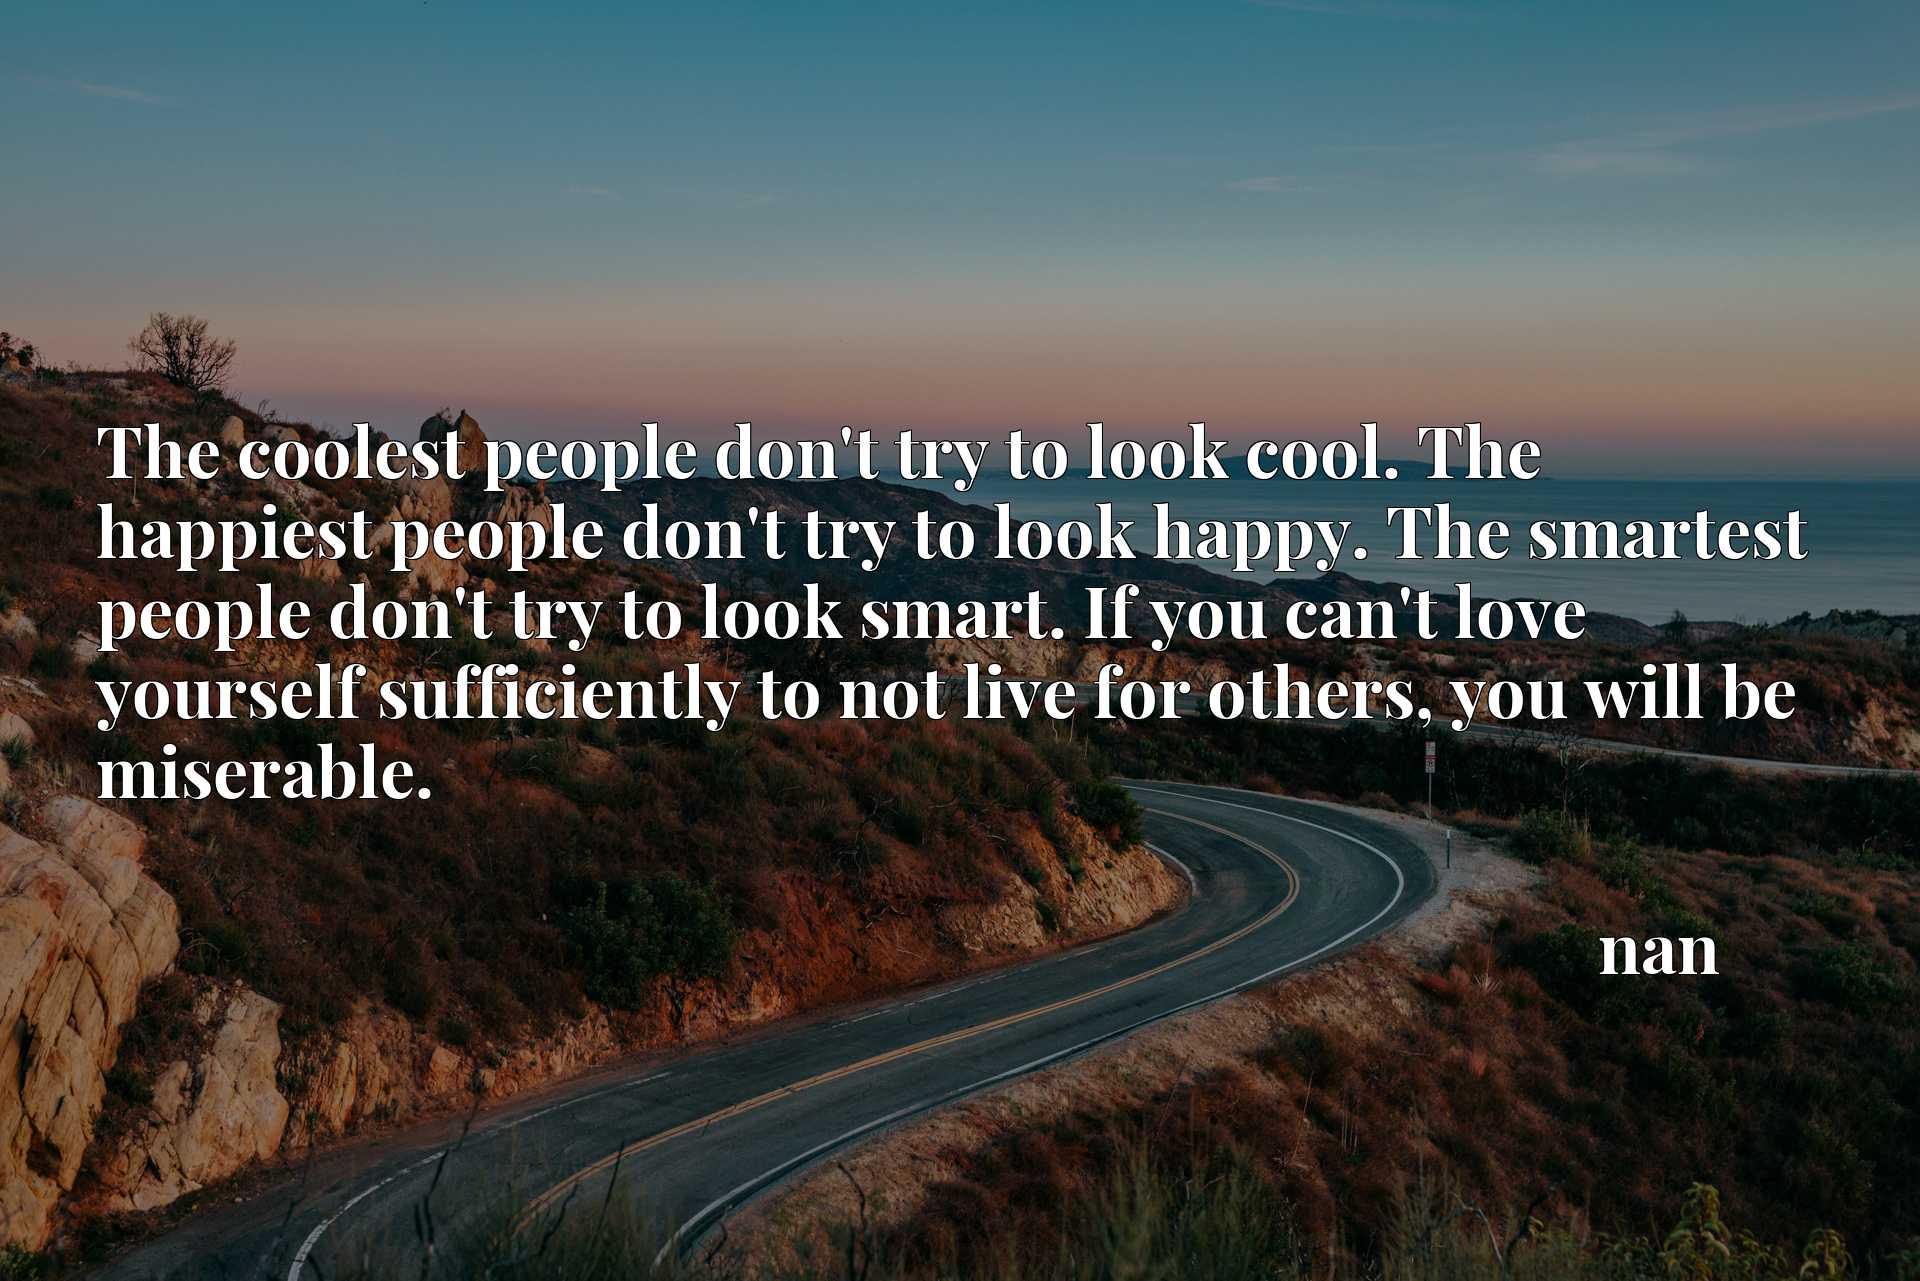 The coolest people don't try to look cool. The happiest people don't try to look happy. The smartest people don't try to look smart. If you can't love yourself sufficiently to not live for others, you will be miserable.